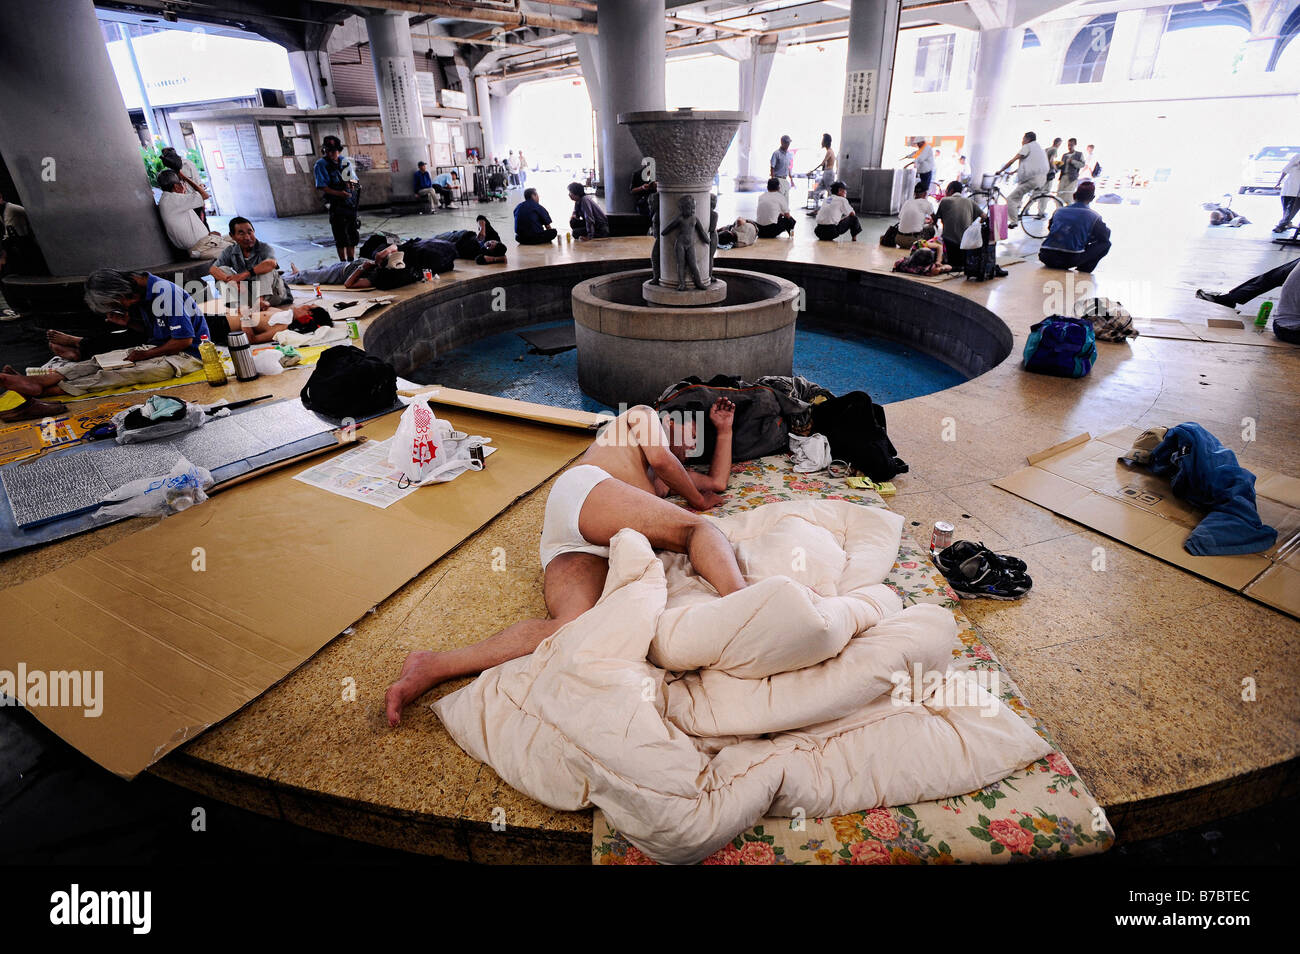 Homeless and jobless men hang around a communal area of the Nishinari Labor Welfare Center in the Kamagasaki district - Stock Image